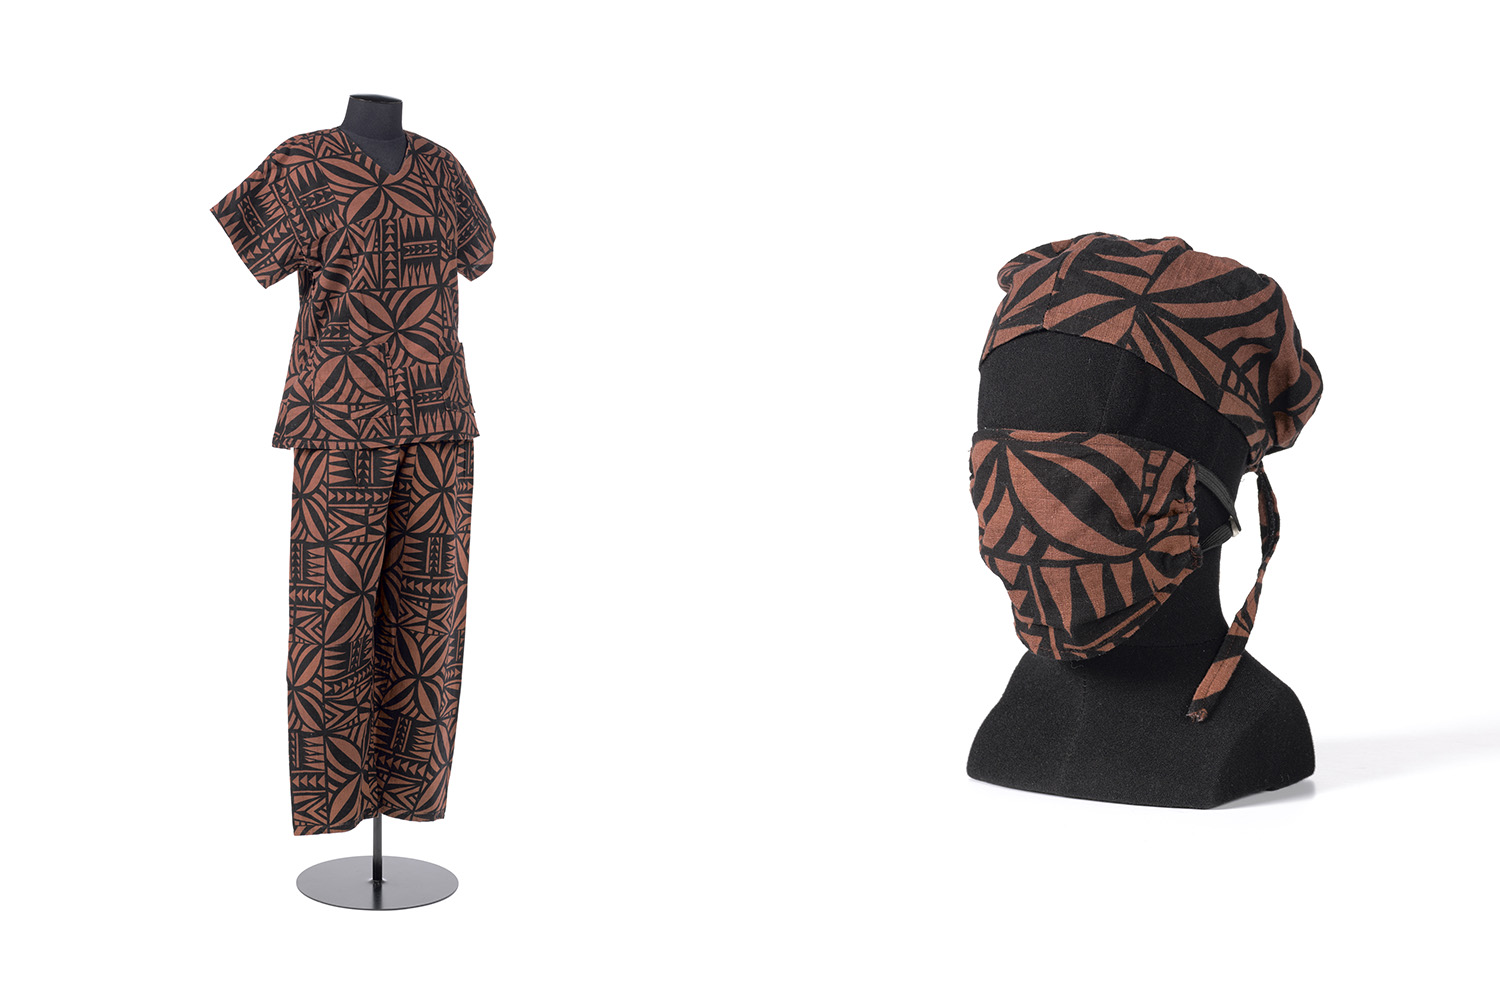 Doctors scrubs made of material featuring highly decorative Polynesian motifs in brown and black